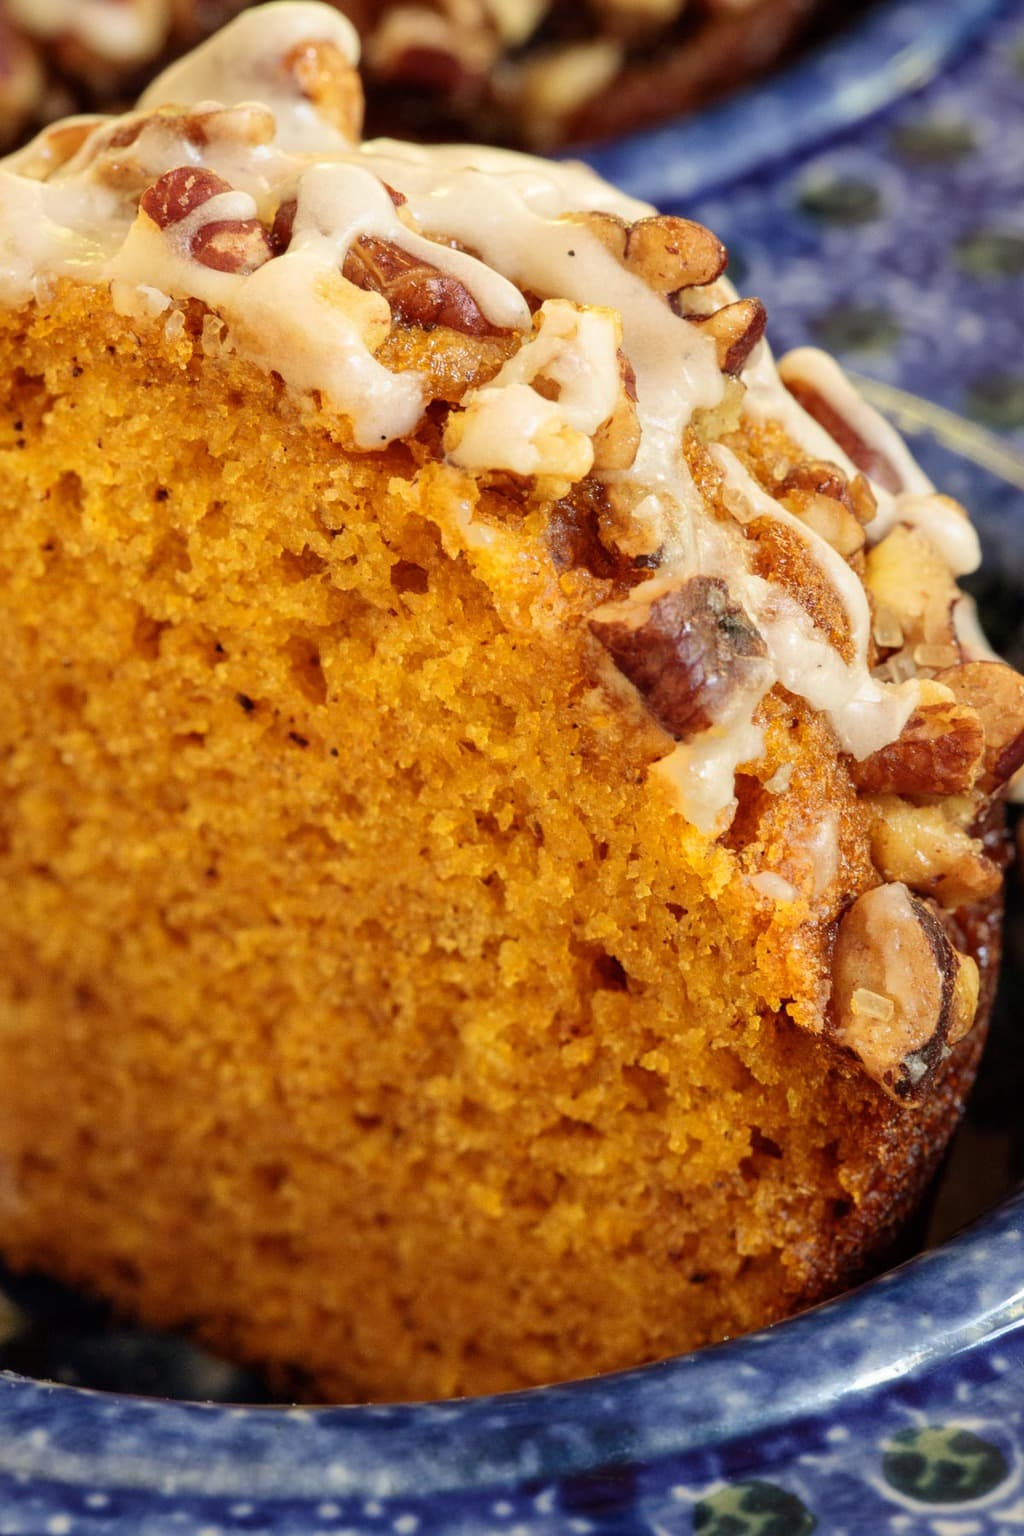 Extreme closeup photo of the inside of an Easy Praline Pumpkin Muffin.